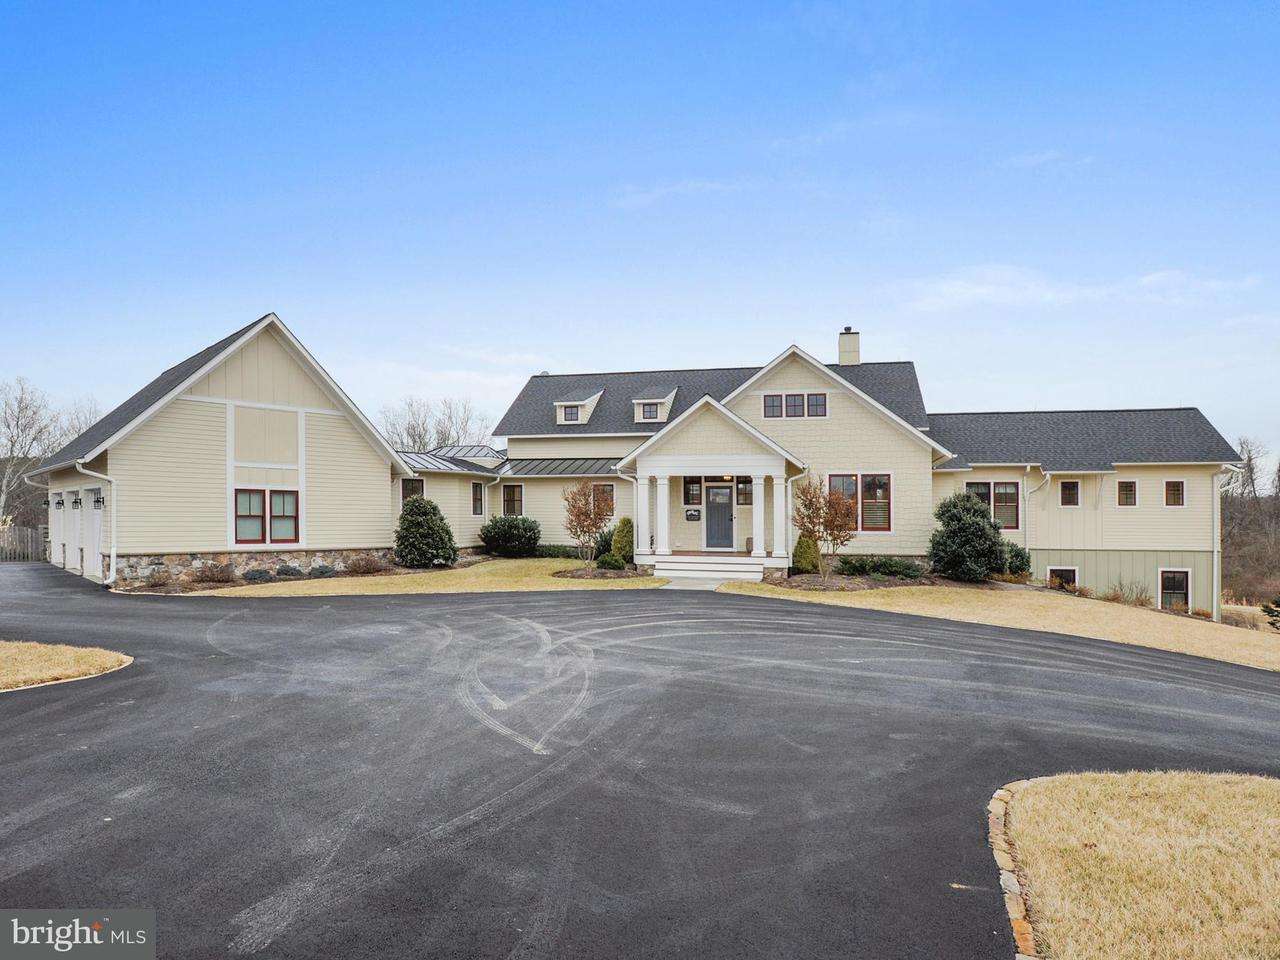 Single Family Home for Sale at 39556 Charles Town Pike 39556 Charles Town Pike Hamilton, Virginia 20158 United States